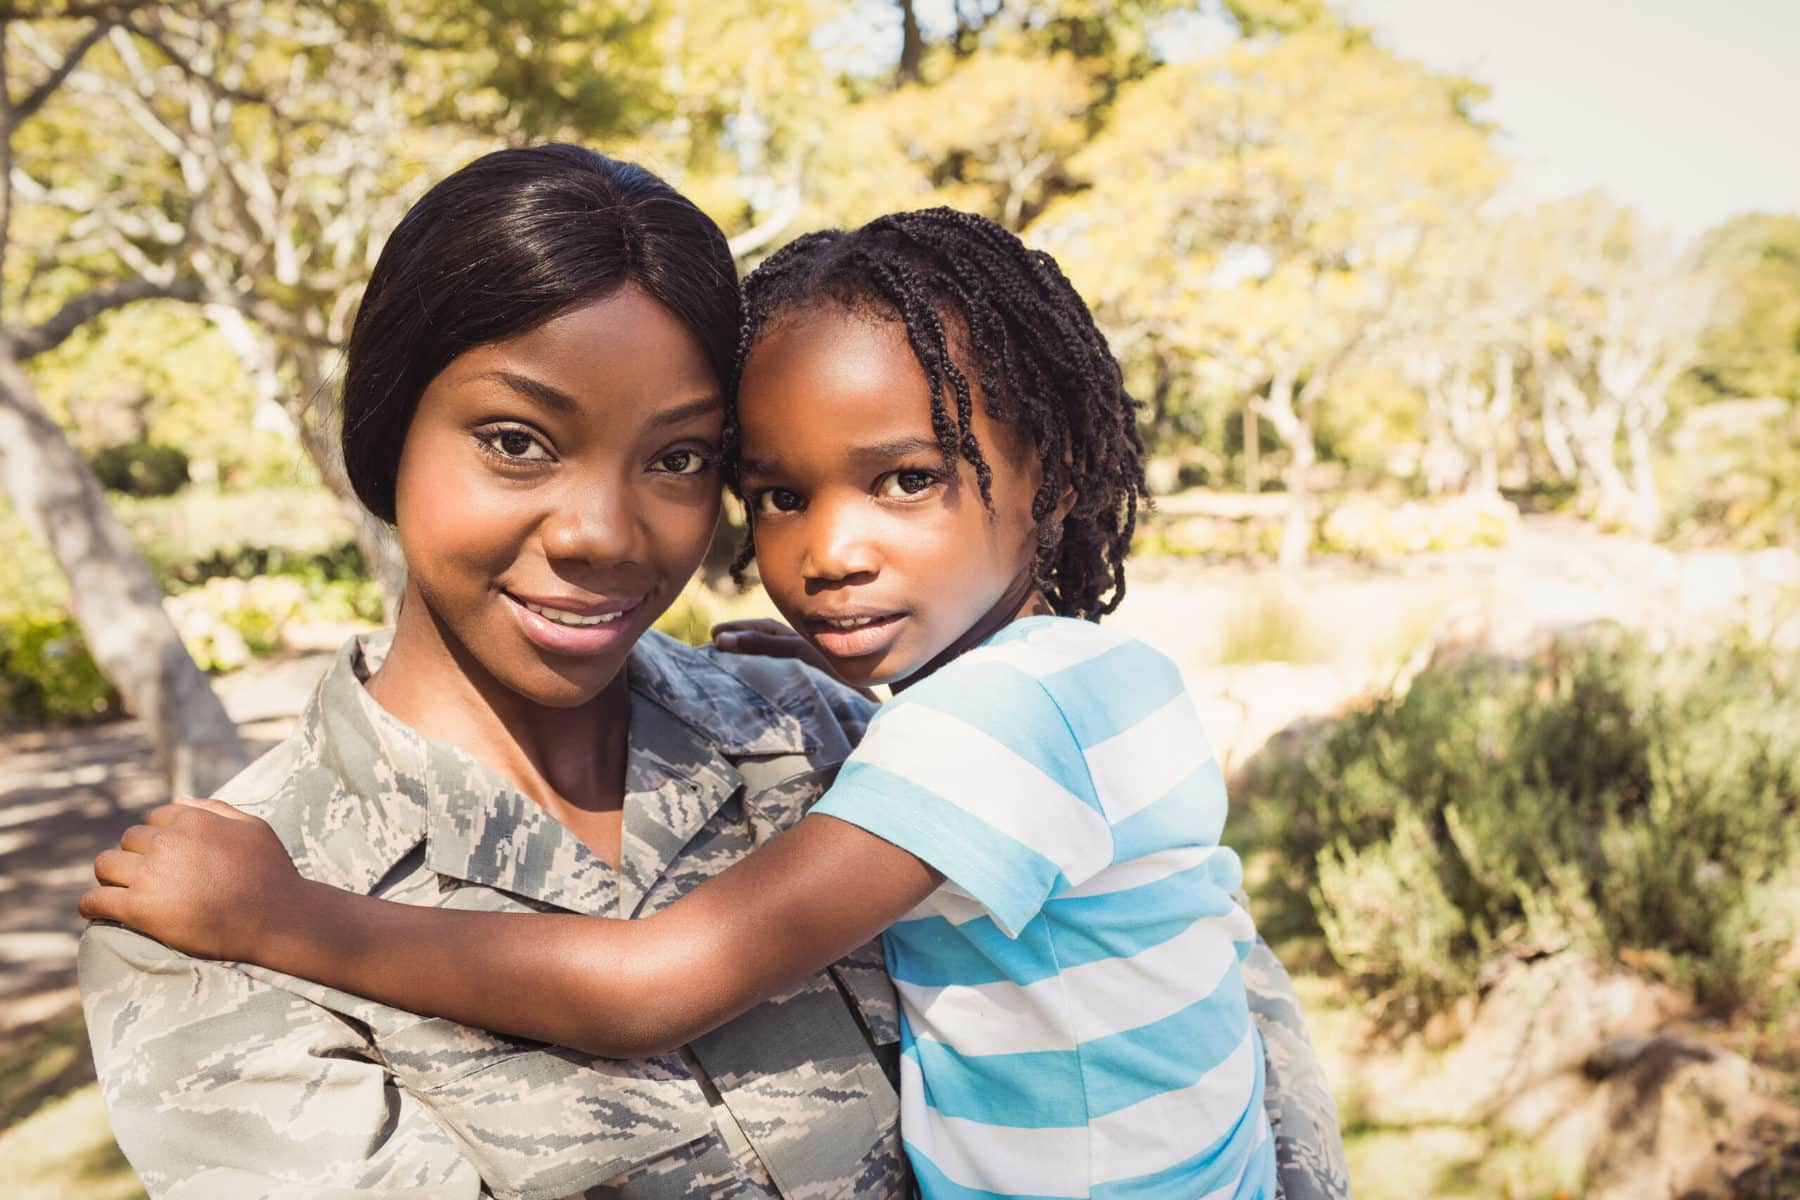 African American woman in military uniform standing and holding young child.